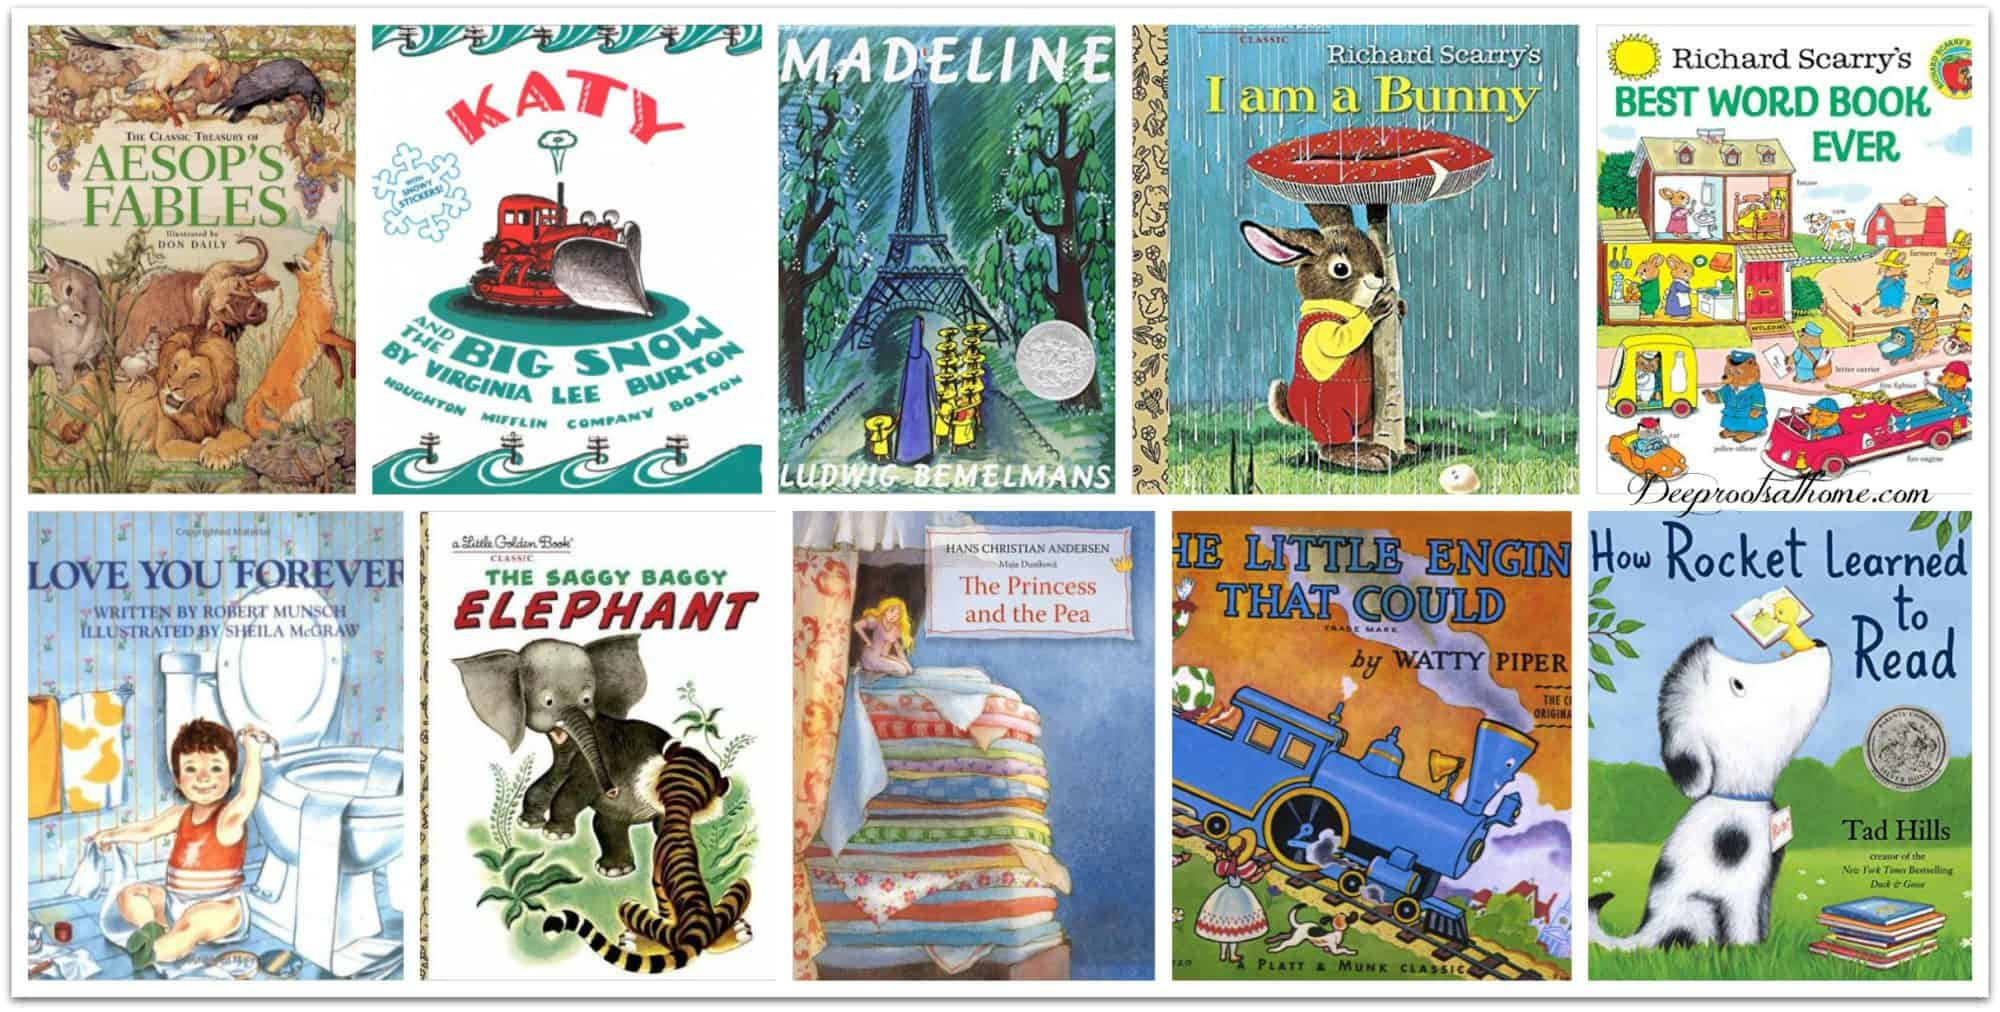 Early Reading Library: 75 Of The Best Little Children's Books Of All Time, reading aloud, thinking patterns, academic ability, communication skills, glue, bonding with parent, spending time, quality time, walk side by side, adventure, snuggling up, reading on the couch, teaching how to read, literacy, love to read, books, children's books, classic literature, children's lit, education, nurture, young kids, authors, favorite books, The Story about Ping, Marjorie Flack, The Most Wonderful Doll in the World, Phyllis McGinley, Blueberries for Sal, Robert McCloskey, Curious George, H. A. Rey, Pretzel, Margret Rey, Make Way for Ducklings, Betsy-Tacy, Winnie-the-Pooh, A. A. Milne, The Cat in the Hat,  Dr. Seuss, The Story of Ferdinand, Munro Leaf, Good Dog, Carl, Alexandra Day, The Mouse and the Motorcycle, Beverly Cleary, Little Bear, Elsa Holmelund Minarik, Owl Moon, Jane Yolen, Frog and Toad Storybook , Arnold Lobel, Paddington Bear, Harold and the Purple Crayon, Corduroy, Don Freeman, Owl at Home, My Father's Dragon, James and the Giant Peach, Roald Dahl, Autumn Story (Brambly Hedge), Little House in the Big Woods, Laura Ingalls Wilder, The Mitten, The Hat, Jan Brett, The Snowy Day , Peter's Chair, Ezra Jack Keats, Goodnight Moon, Margaret Wise Brown, Pippi Longstocking, Astrid Lindgren, Mrs. Piggle-Wiggle, Town Mouse, Country Mouse, Miss Rumphius, Barbara Cooney, Amelia Bedelia, Peggy Parish, Plain Princess, out of print, book search, C.S. Lewis quote, Animal Stories, Thornton W. Burgess, The Poky Little Puppy, Little Golden Book, Janette Lowrey, The Very Hungry Caterpillar, Mr. Frumble's Coffee Shop Disaster, Richard Scarry, Tikki Tikki Tembo, Arlene Mosel, Mr. Brown Can Moo, Can You?, Dr. Seuss, Guess How Much I Love You, Board Book, Chicka Chicka Boom Boom, board book, Mike Mulligan and His Steam Shovel, Virginia Lee Burton, Lentil